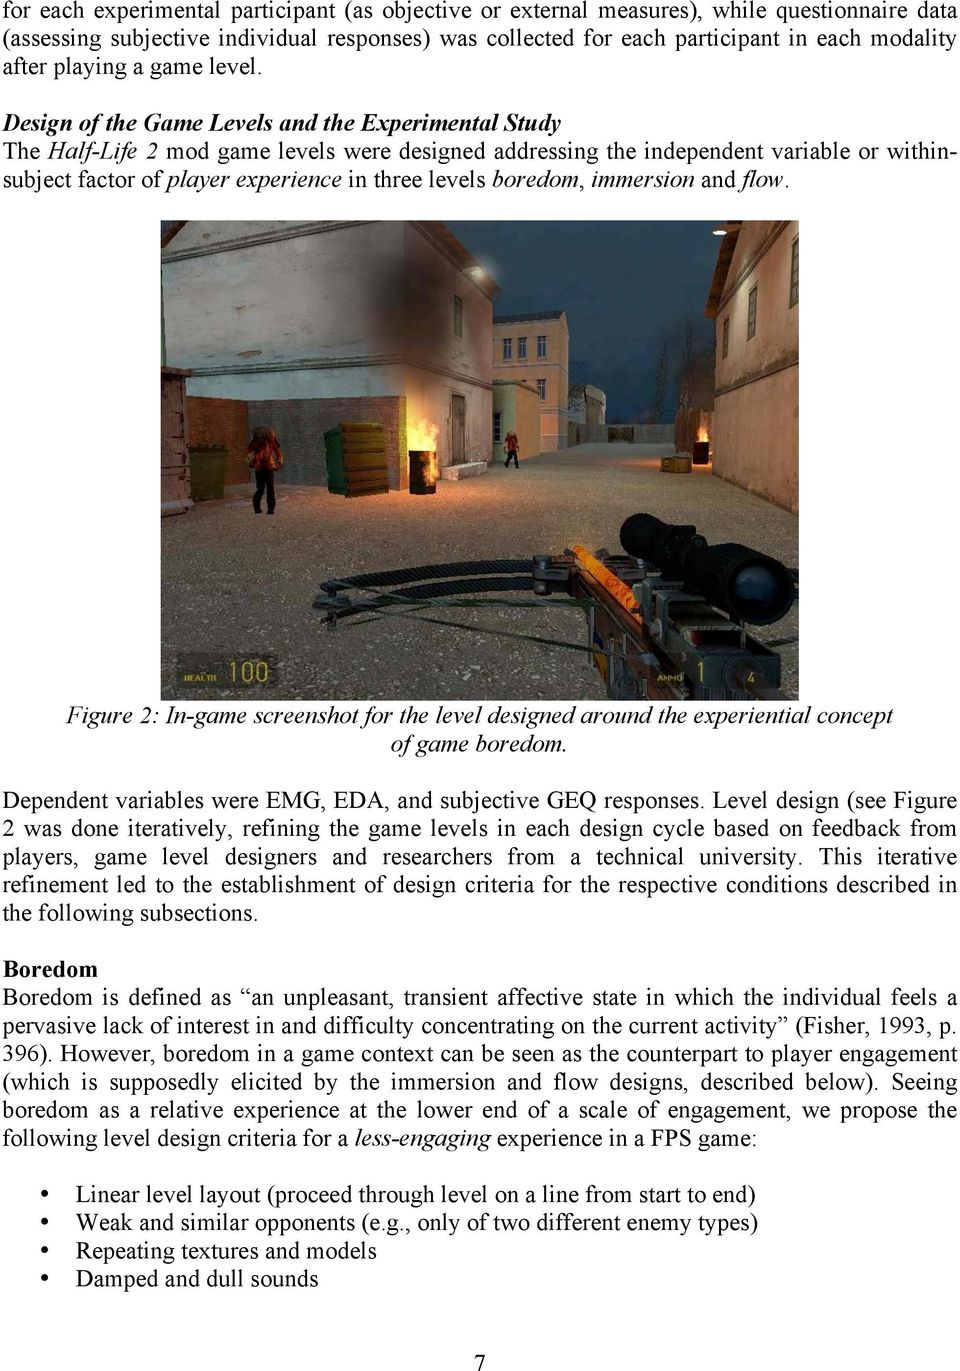 Design of the Game Levels and the Experimental Study The Half-Life 2 mod game levels were designed addressing the independent variable or withinsubject factor of player experience in three levels